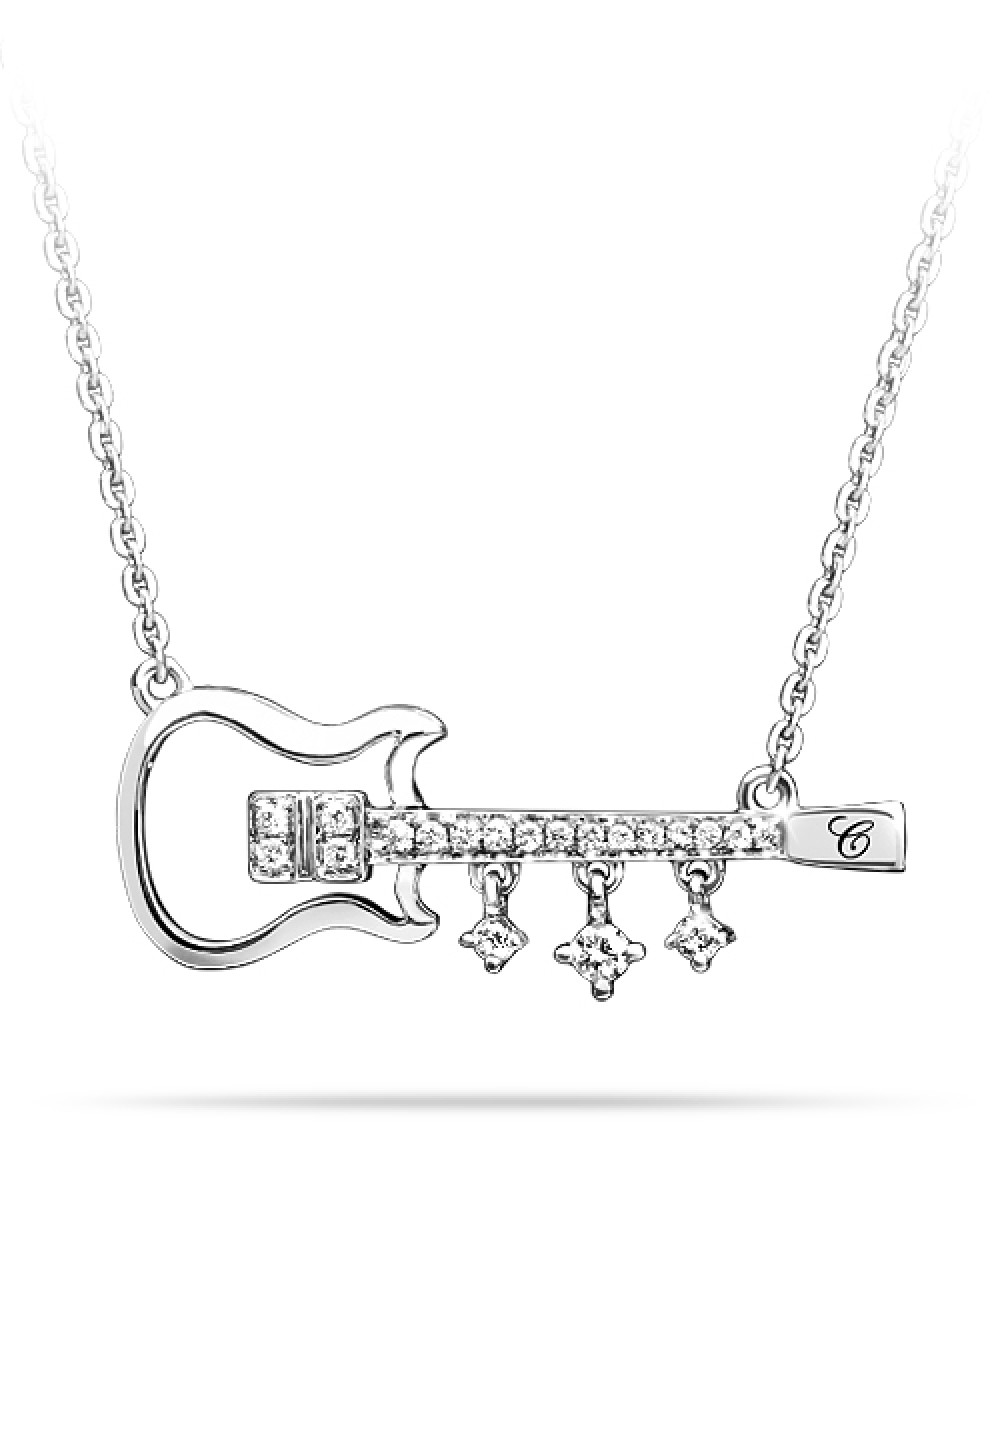 18K White Gold Guitar Necklace with Dangling Diamonds